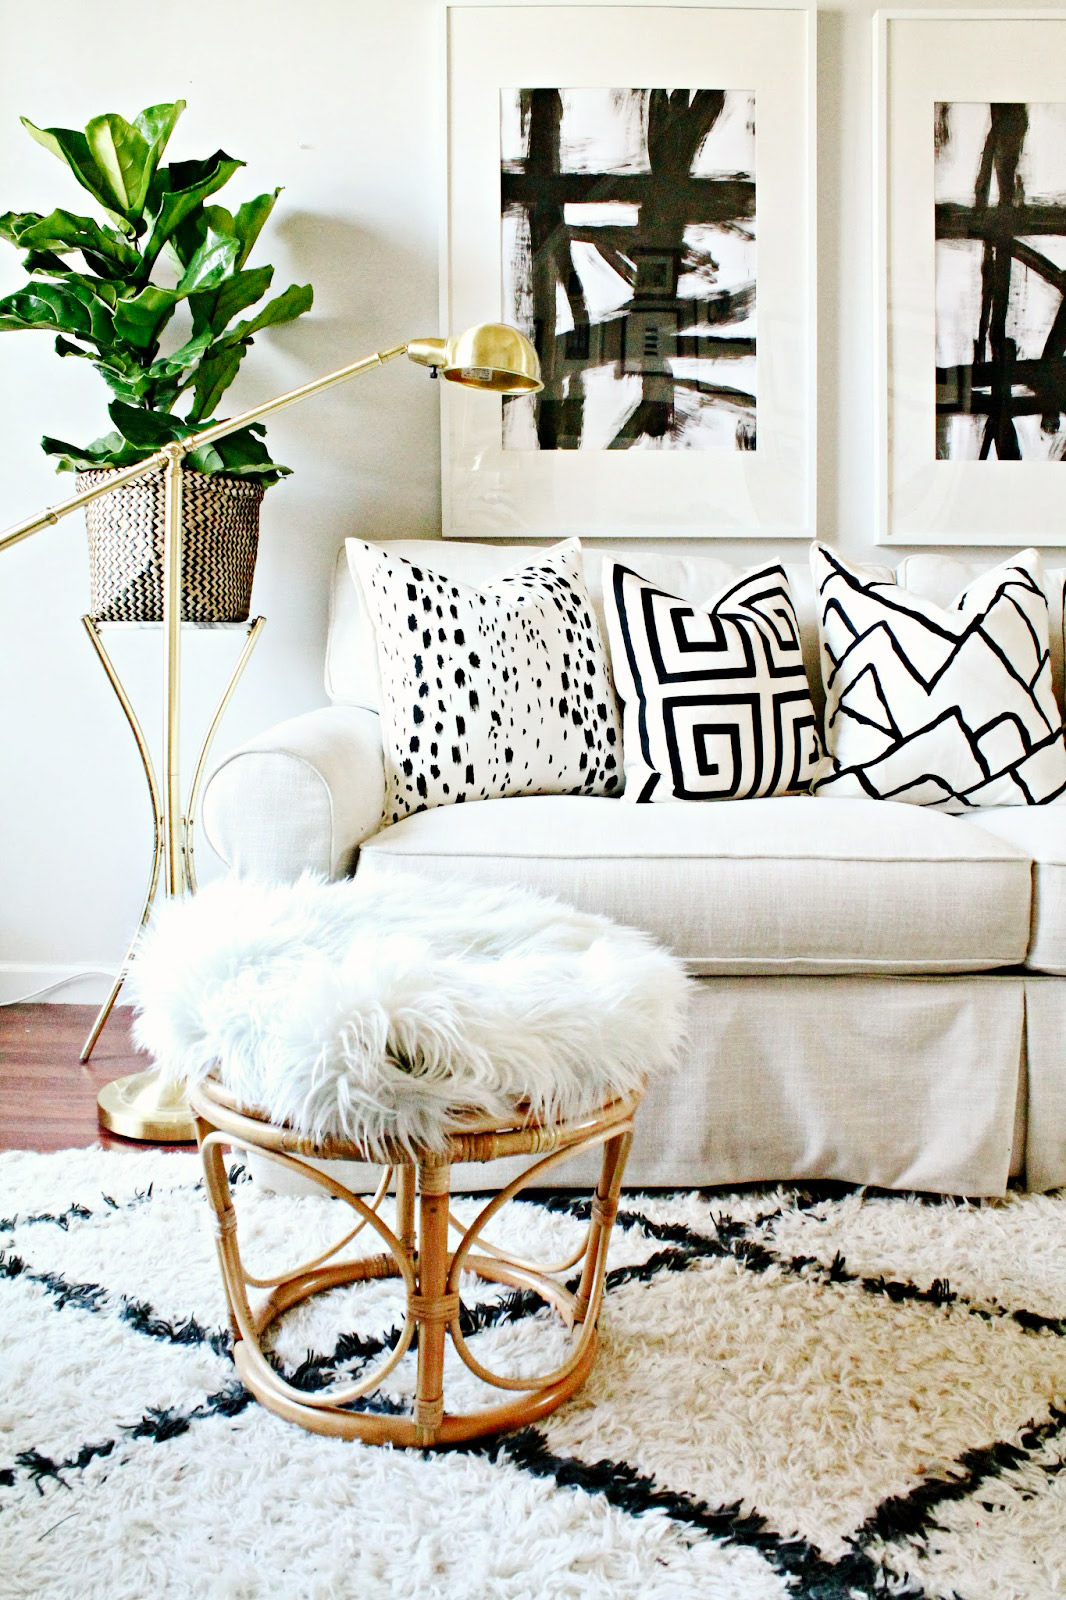 living room 10 Refreshing Ways to Redecorate your Living Room for Summer 10 Refreshing Ways to Redecorate your Living Room for Summer2 1